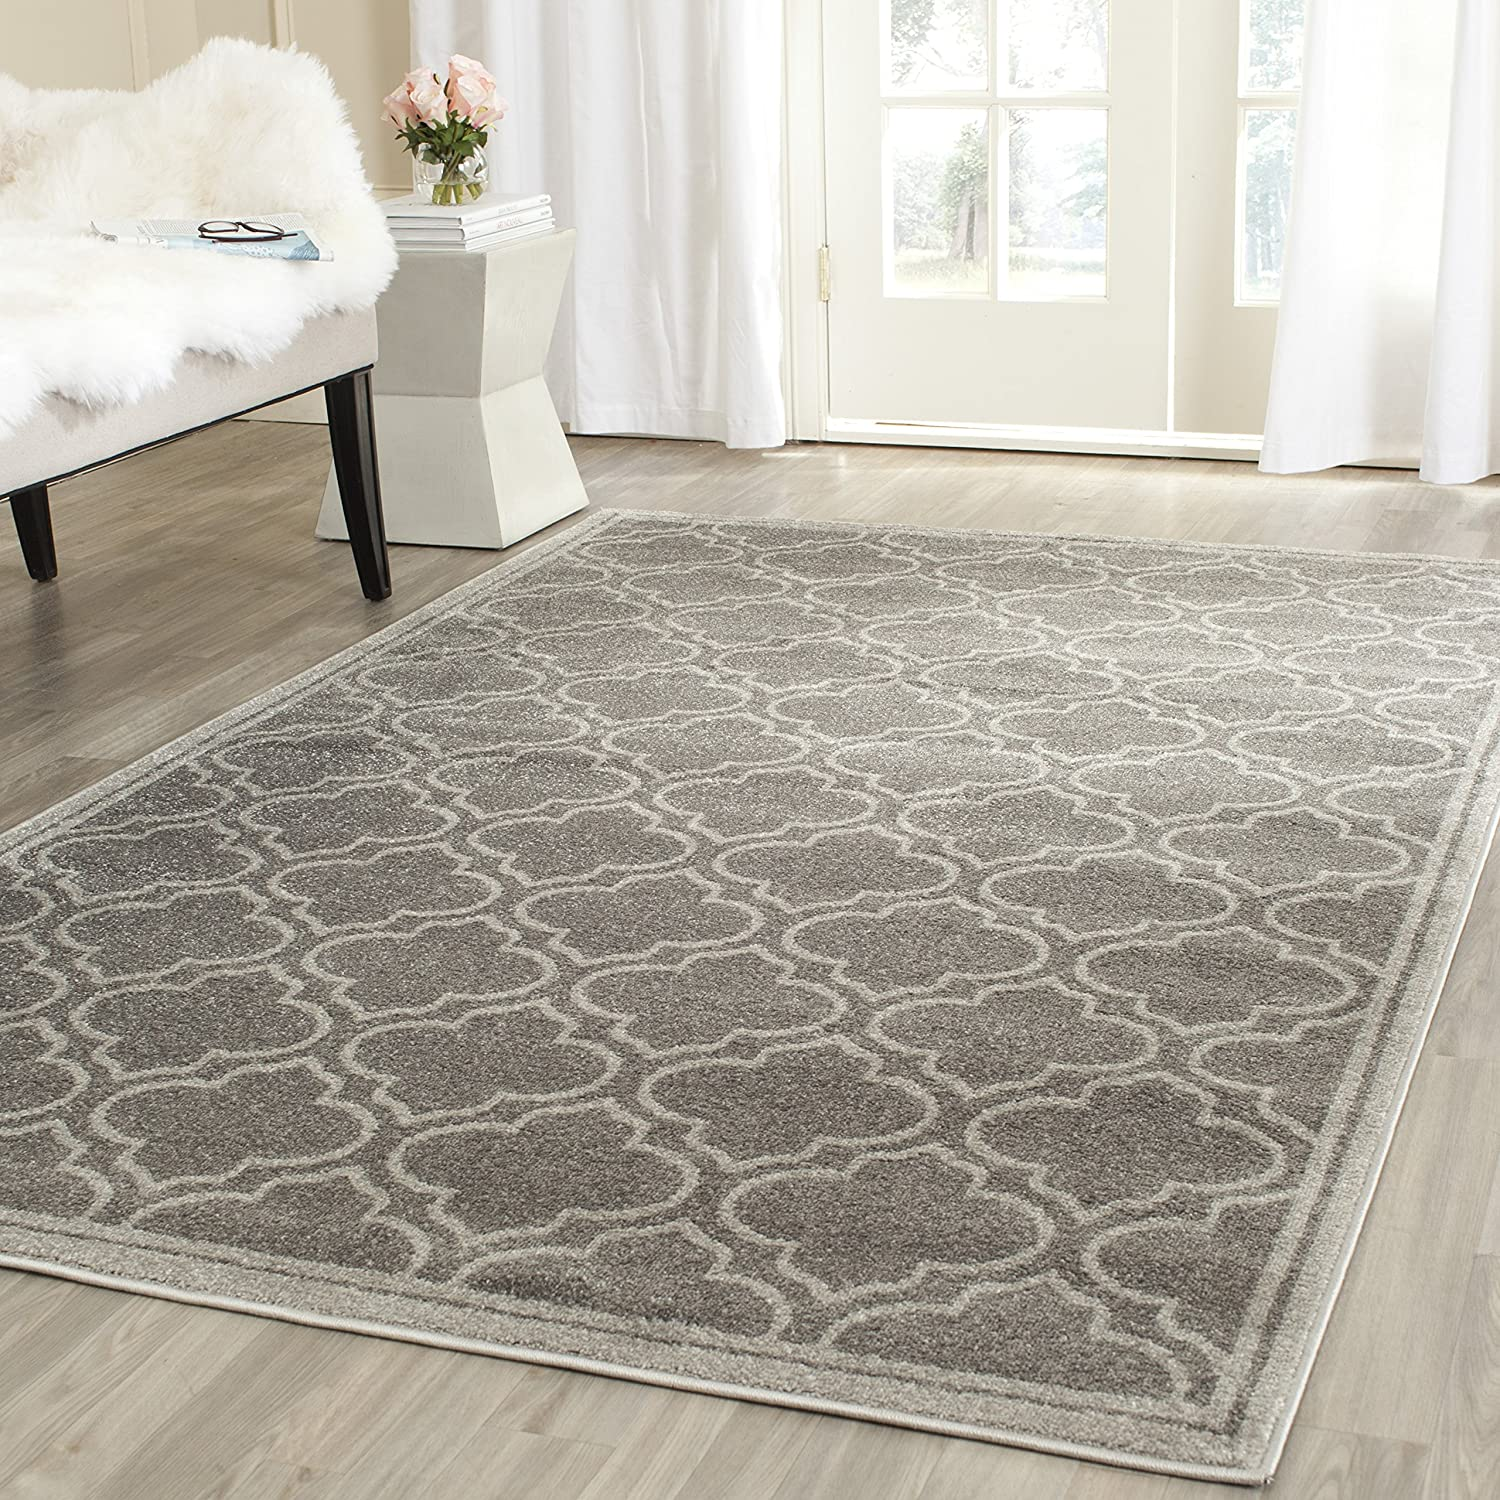 Amazon.com: Safavieh Amherst Collection AMT412C Grey And Light Grey Indoor/Outdoor  Area Rug (4u0027 X 6u0027): Kitchen U0026 Dining